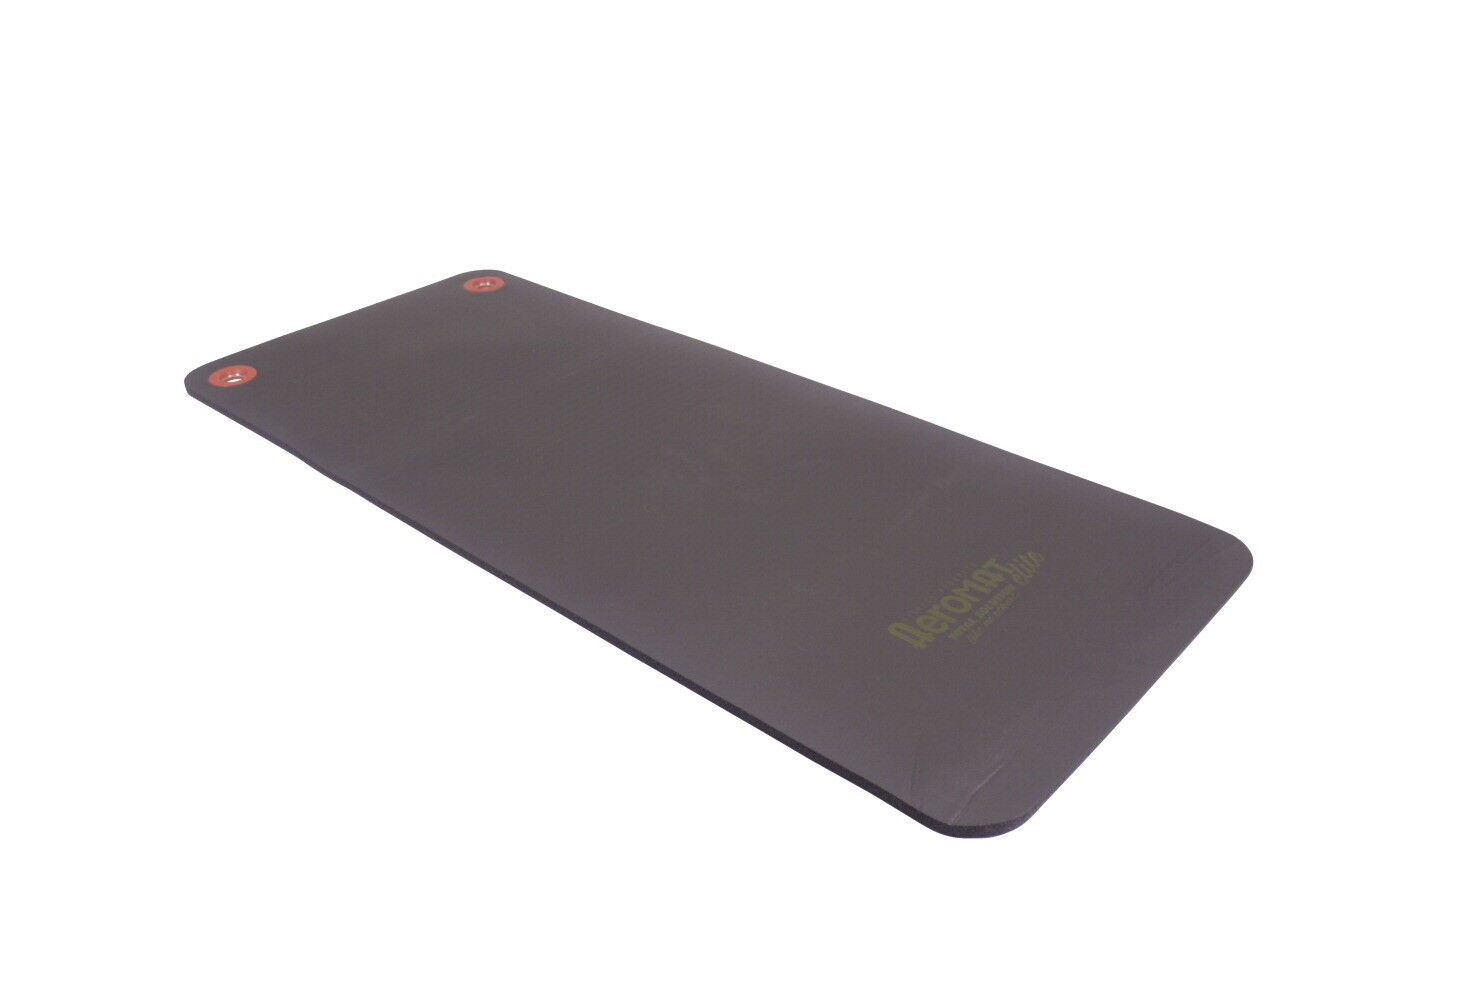 Workout Exercise Floor Mat with Eyelet Phthalate-Free PVC Cl